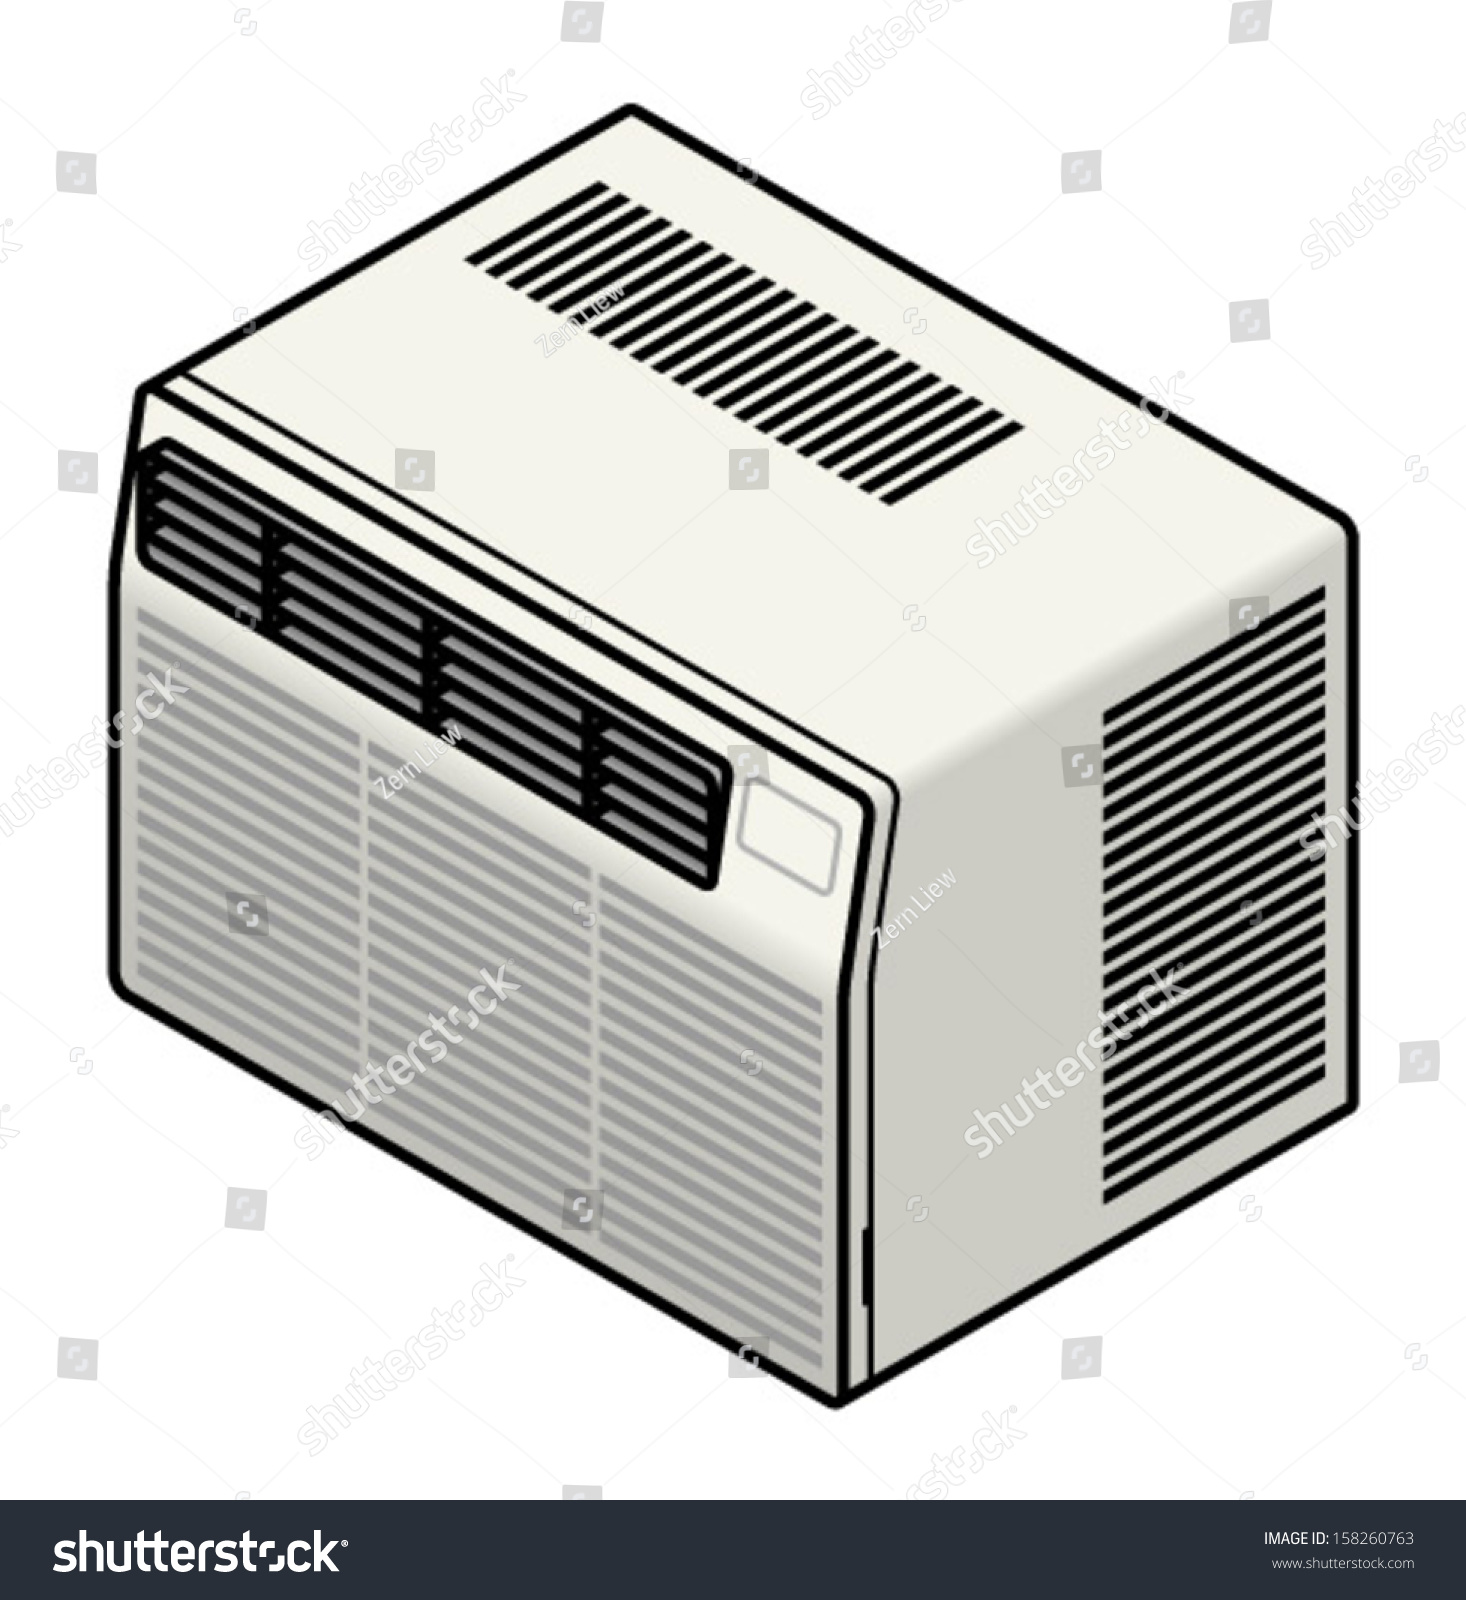 Domestic All In One Wall Or Window Mounted Air Conditioner. Stock  #1A1C21